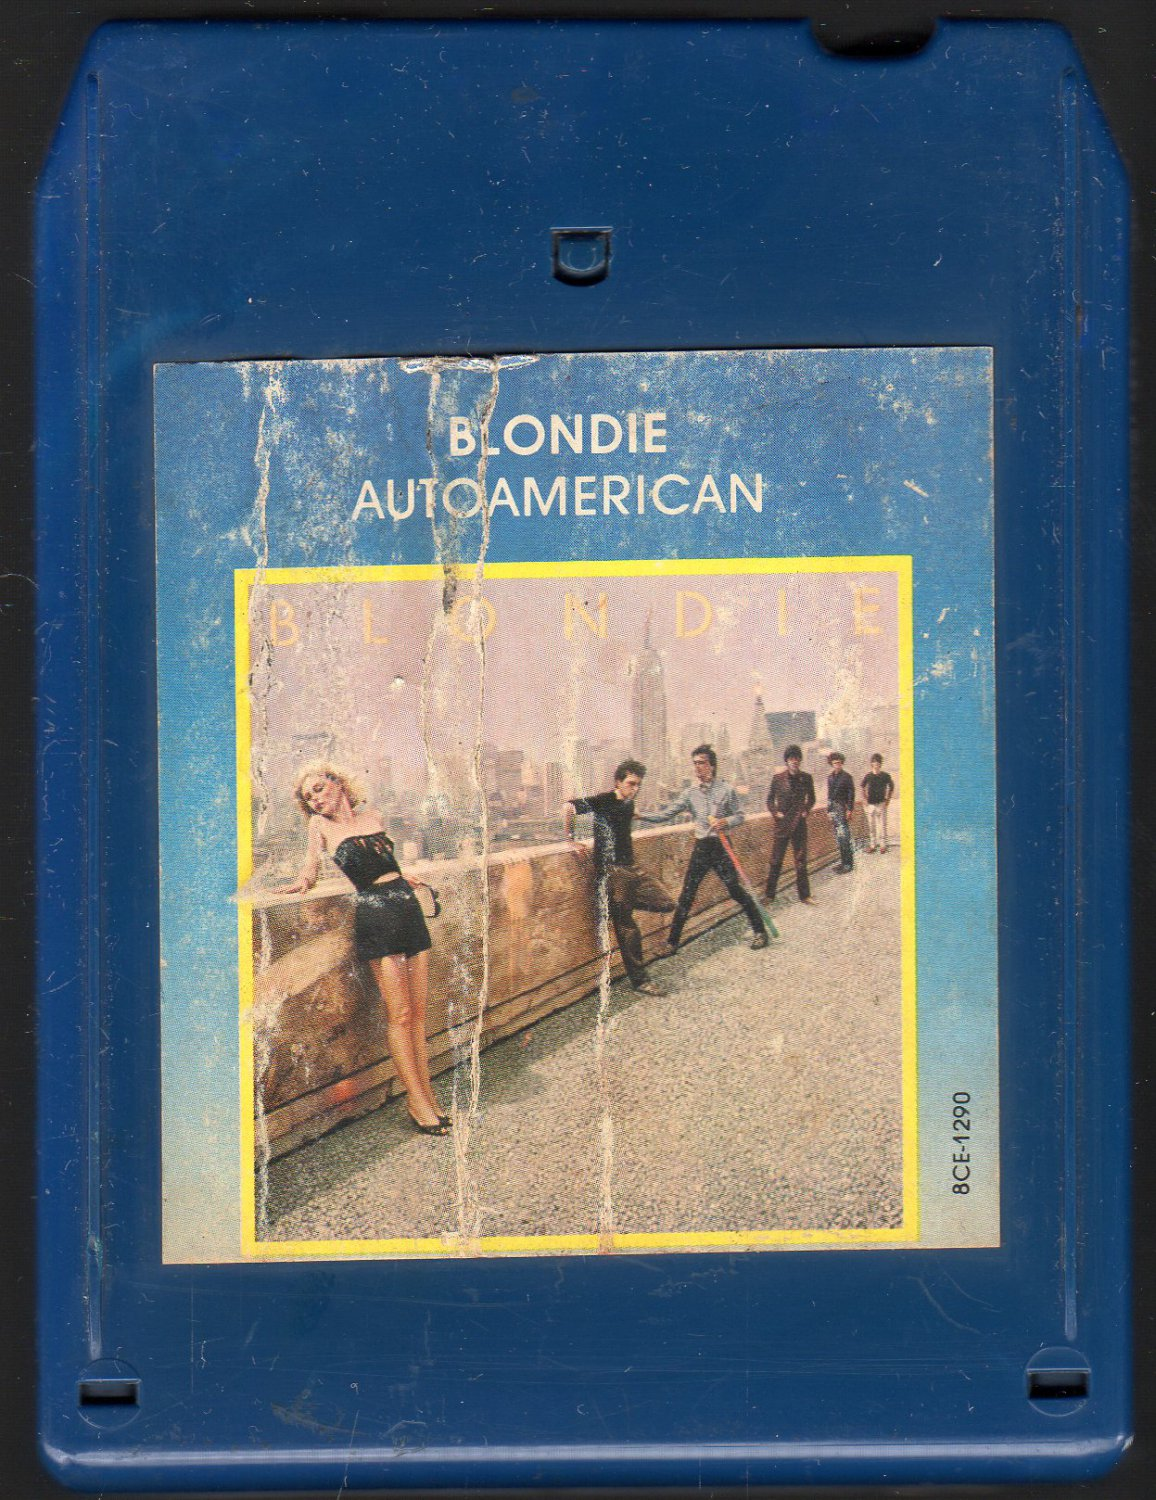 Blondie - Autoamerican 1980 CHRYSALIS A18F 8-TRACK TAPE